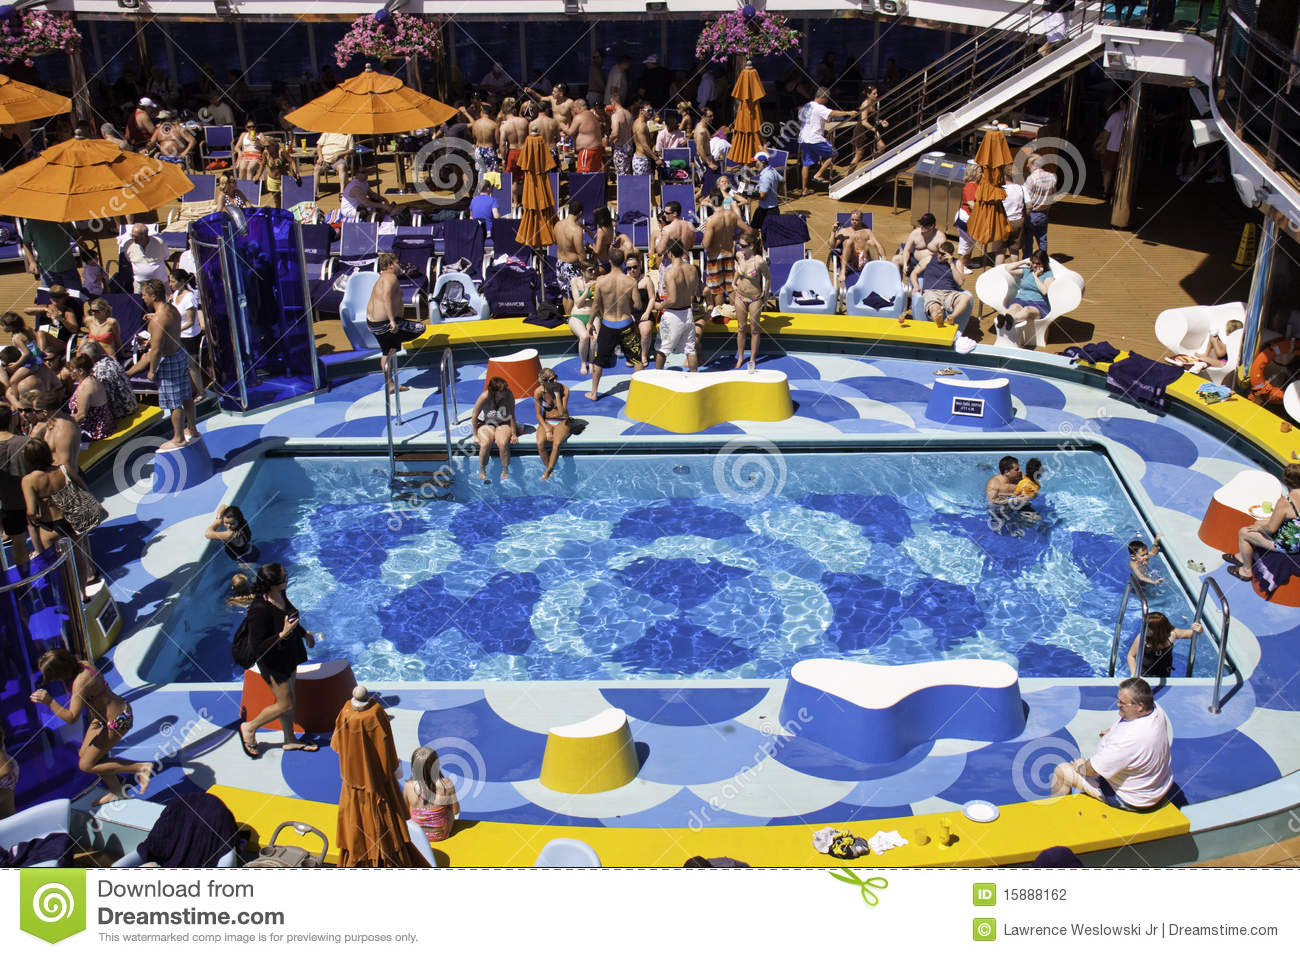 Carnival Dream Cruise Ship Pool Party Fun Editorial Photography Image 15888162